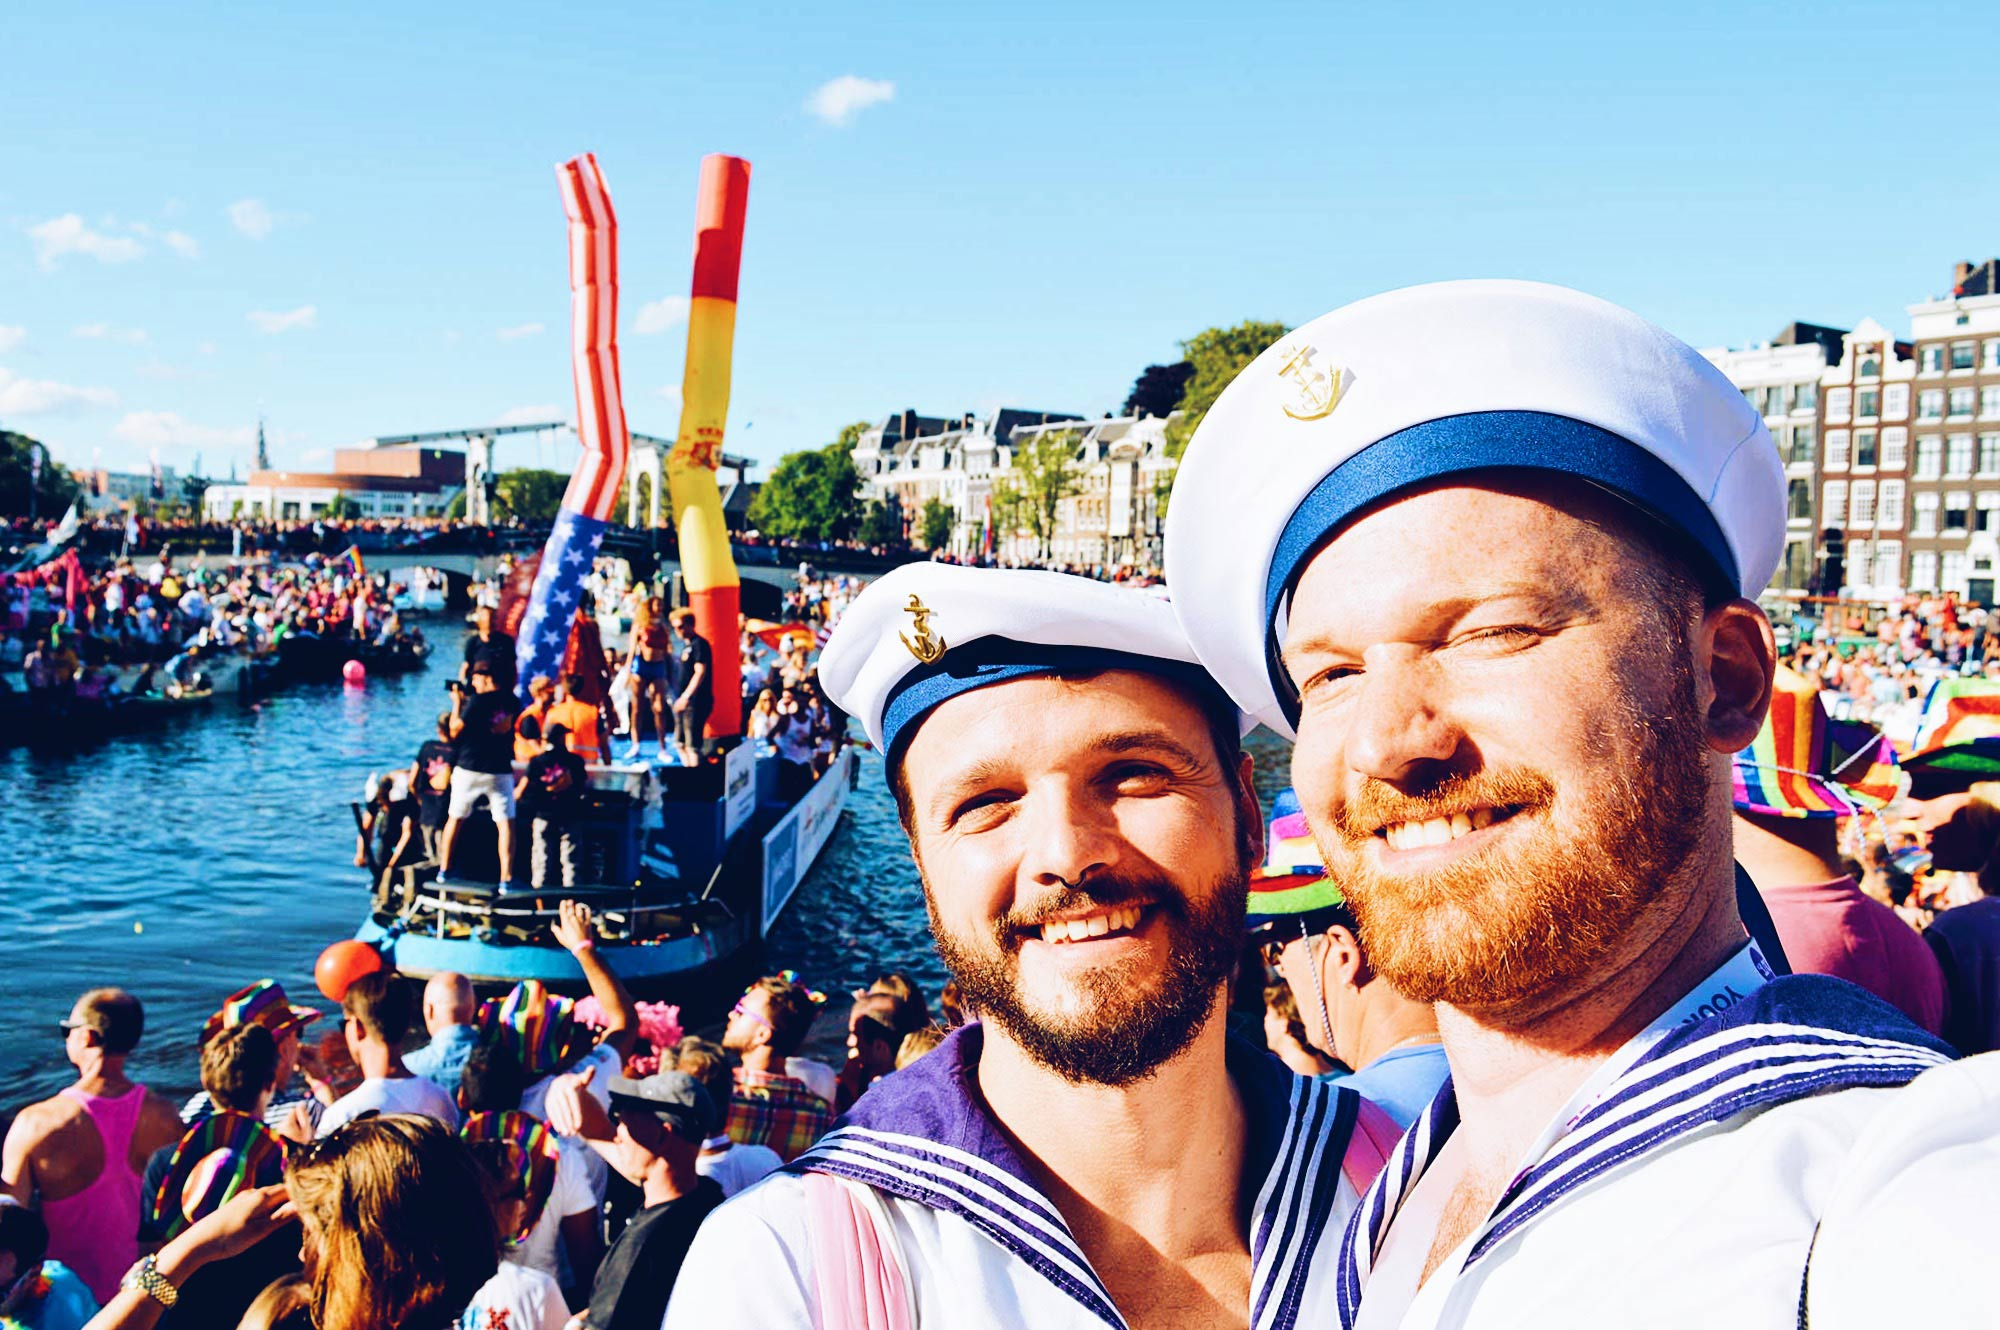 Strong Photos Gay Euro Pride Amsterdam 2016 © CoupleofMen.com